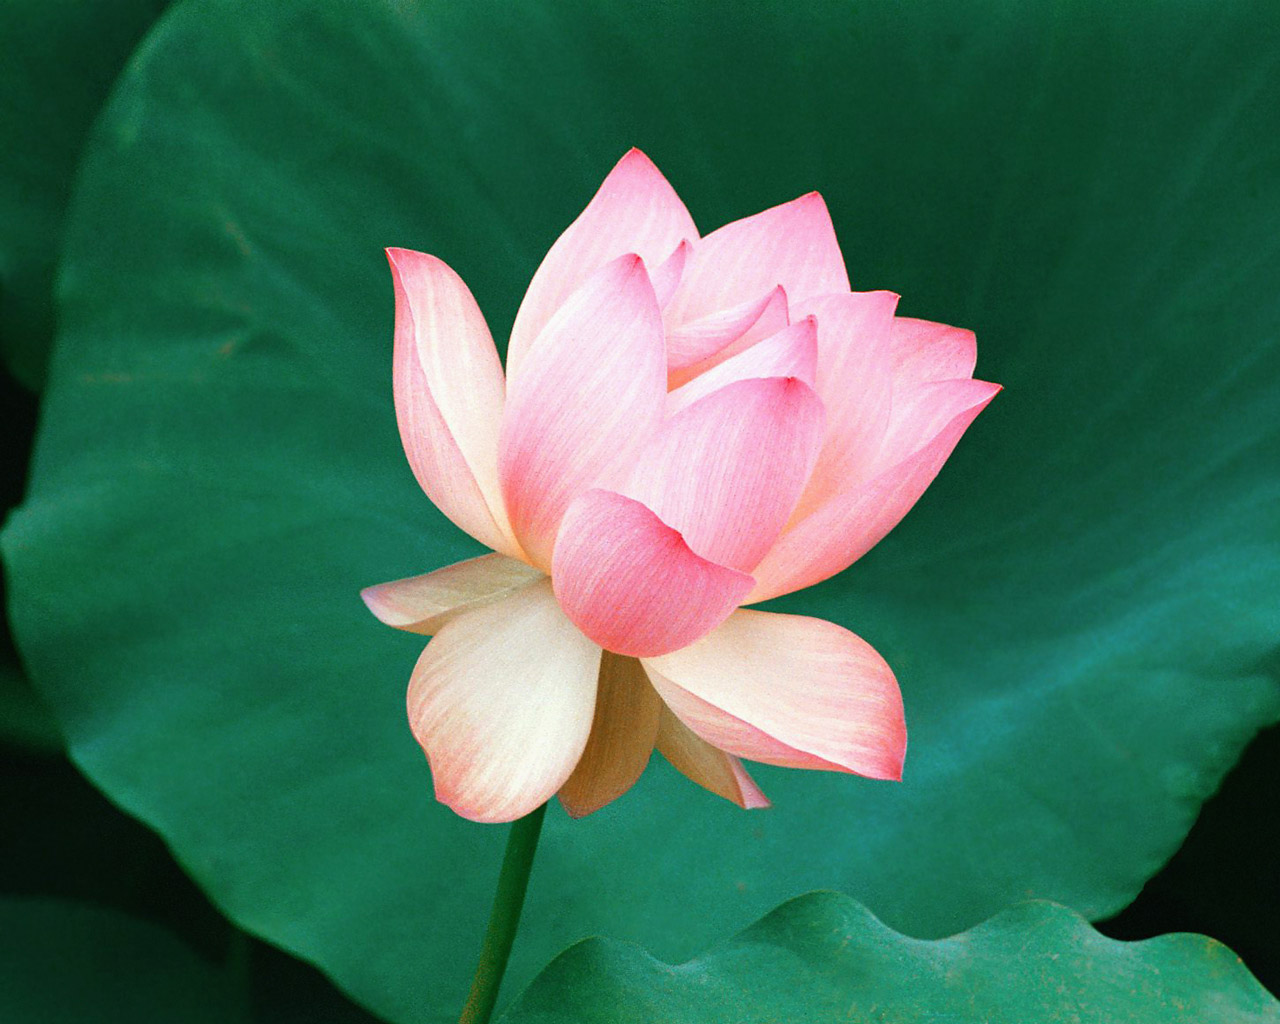 Hwfd National Indian Lotus Flower Desktop Background 1280 X 1024